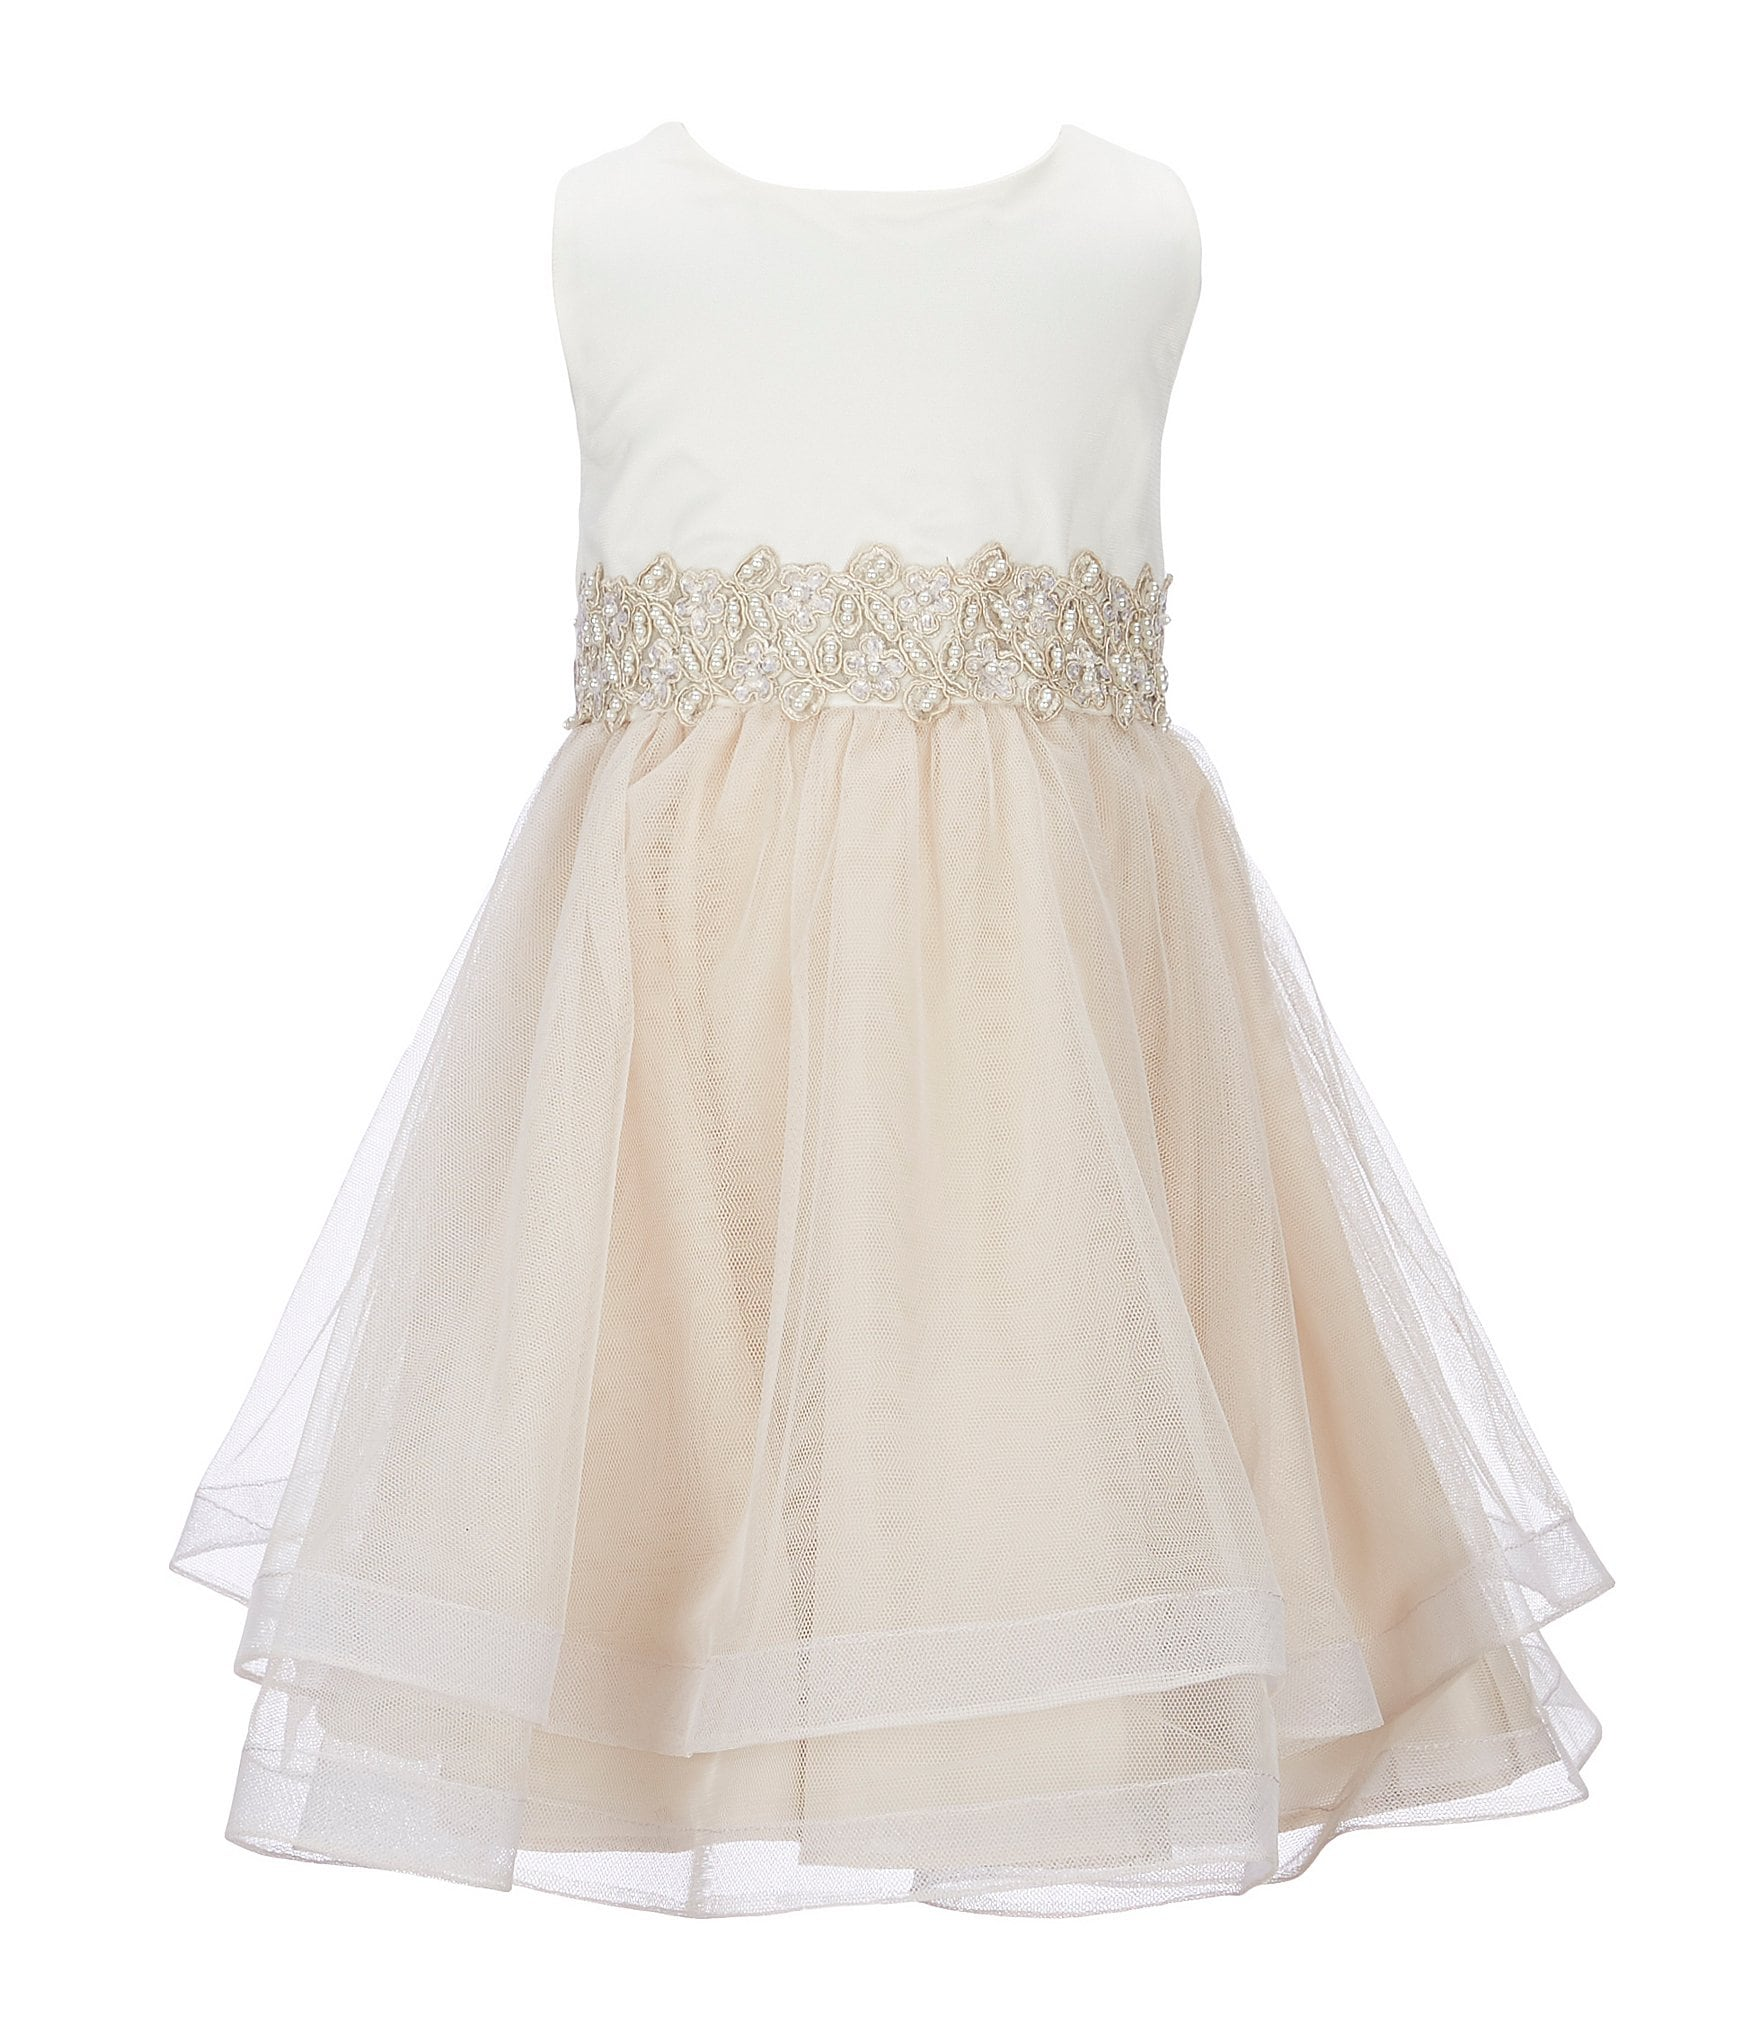 a81832908 Girls' Special Occasion Dresses   Dillard's